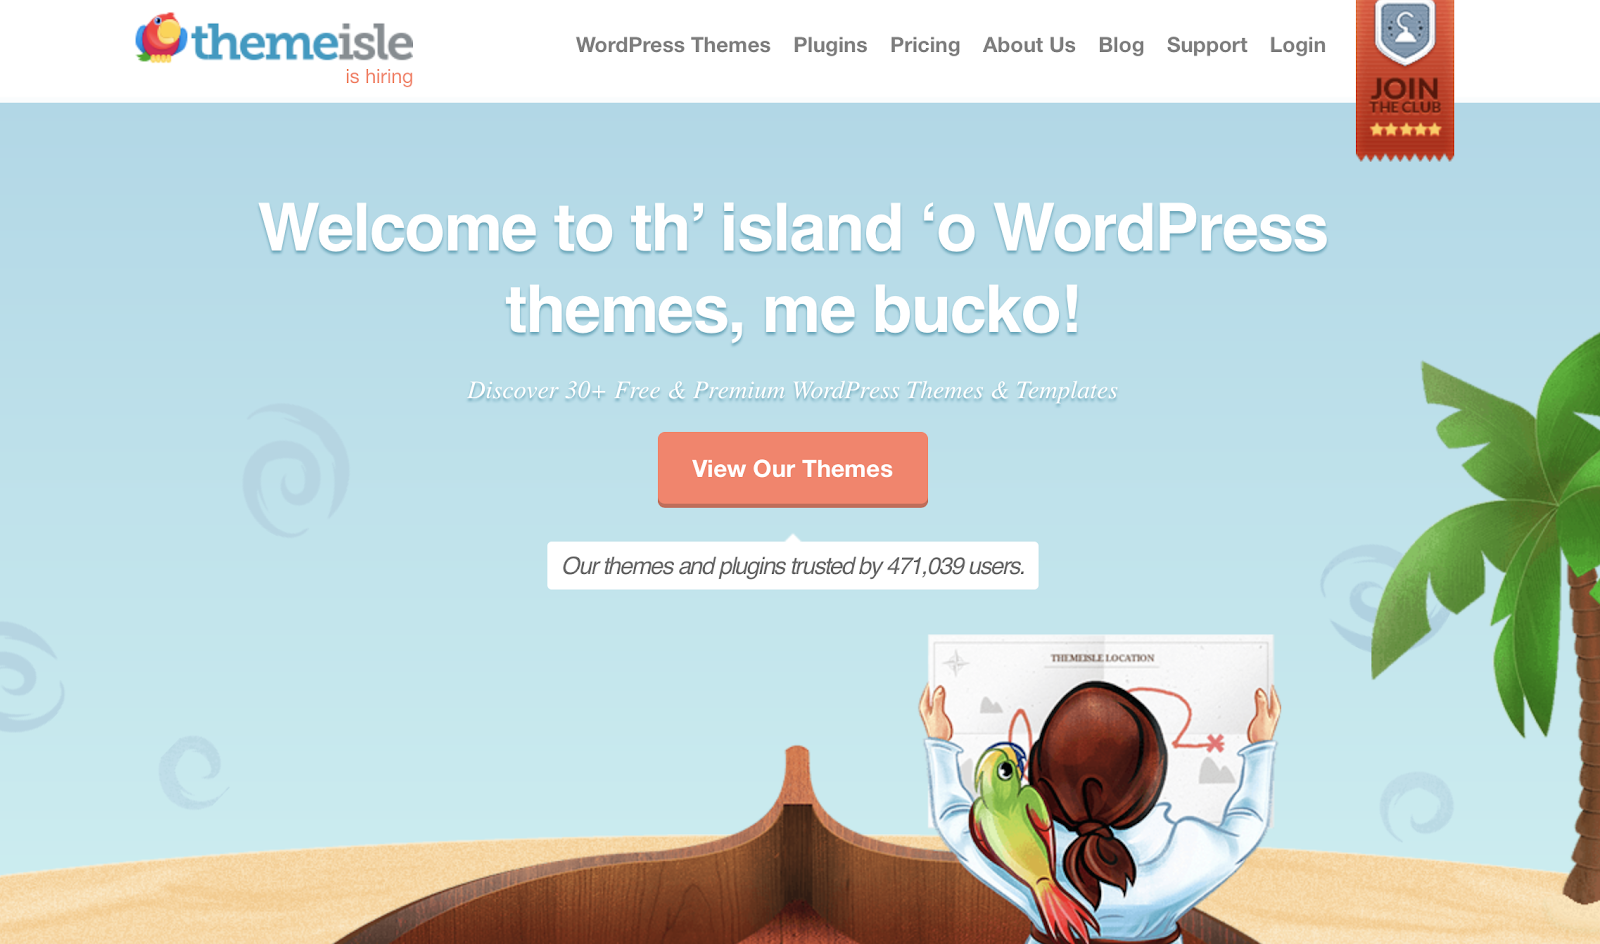 Themisle has an assortment of WordPress themes.